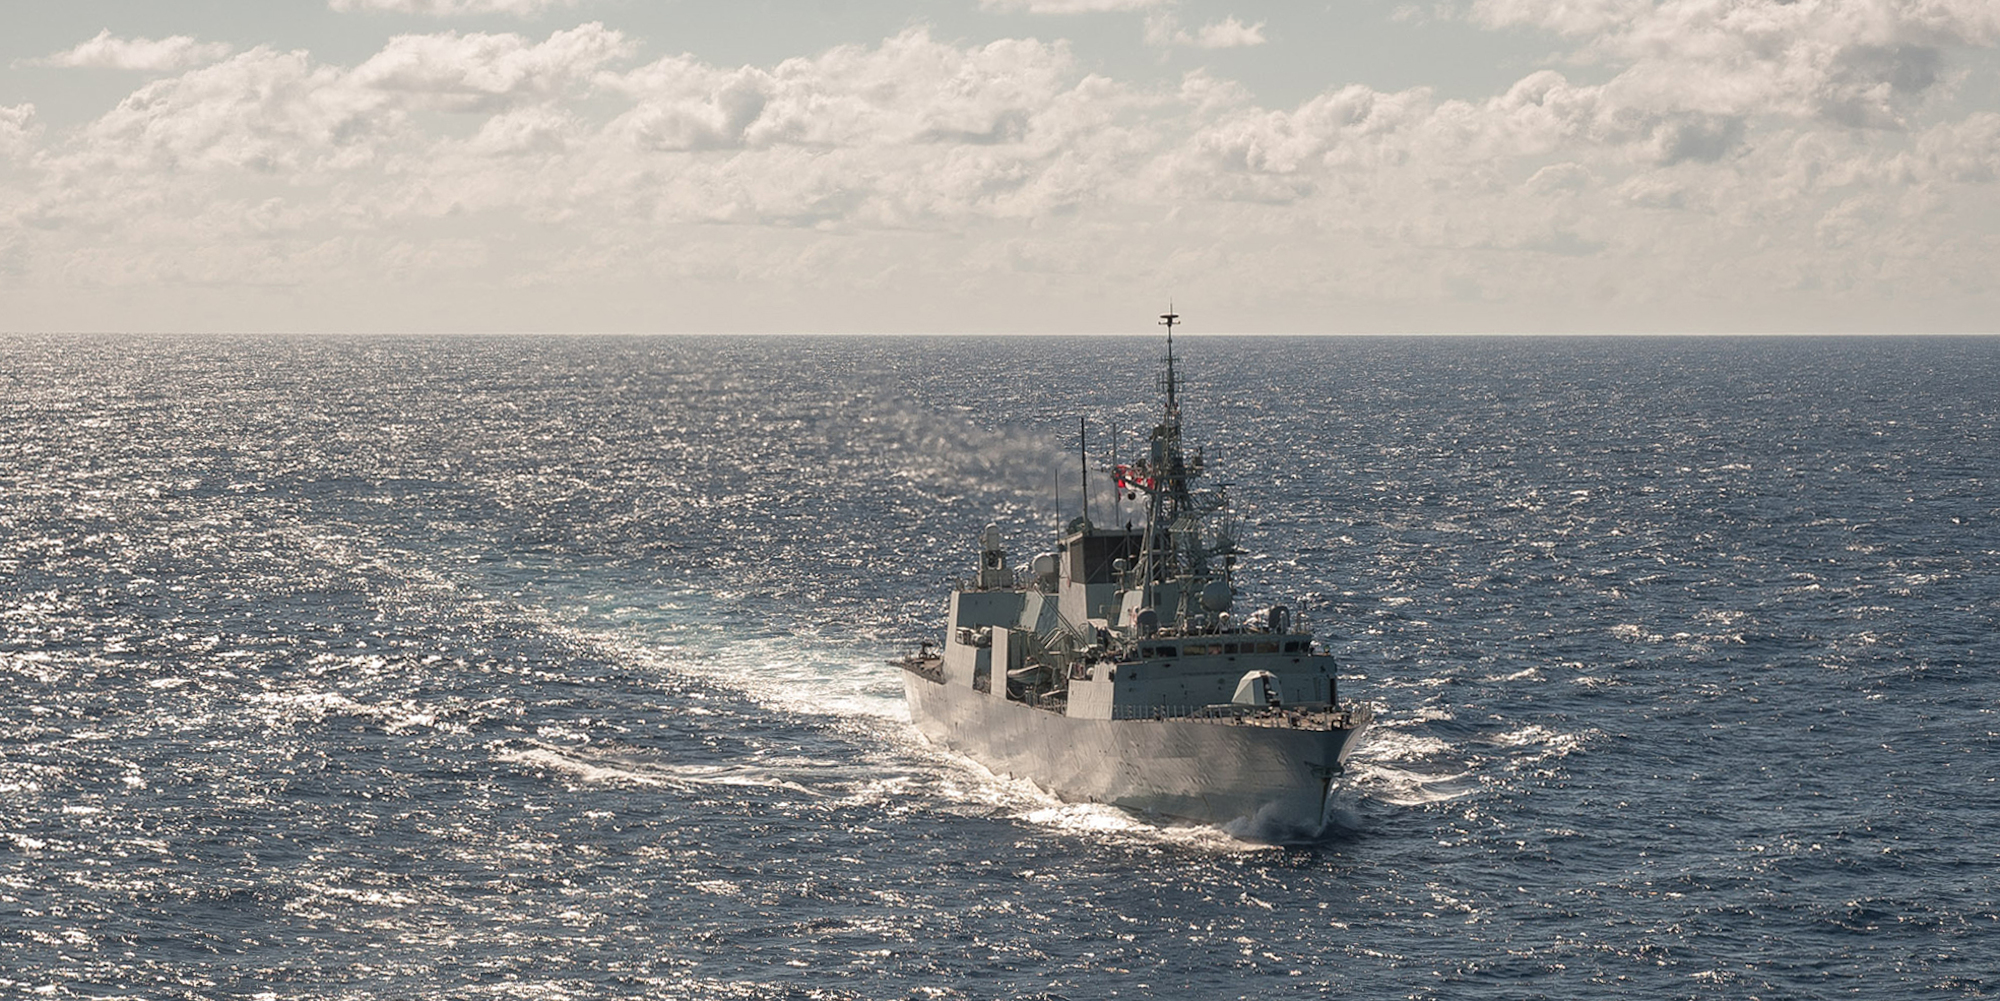 Amid BC Shutdown Orders, CFB Esquimalt Continues to Send Out Vessels